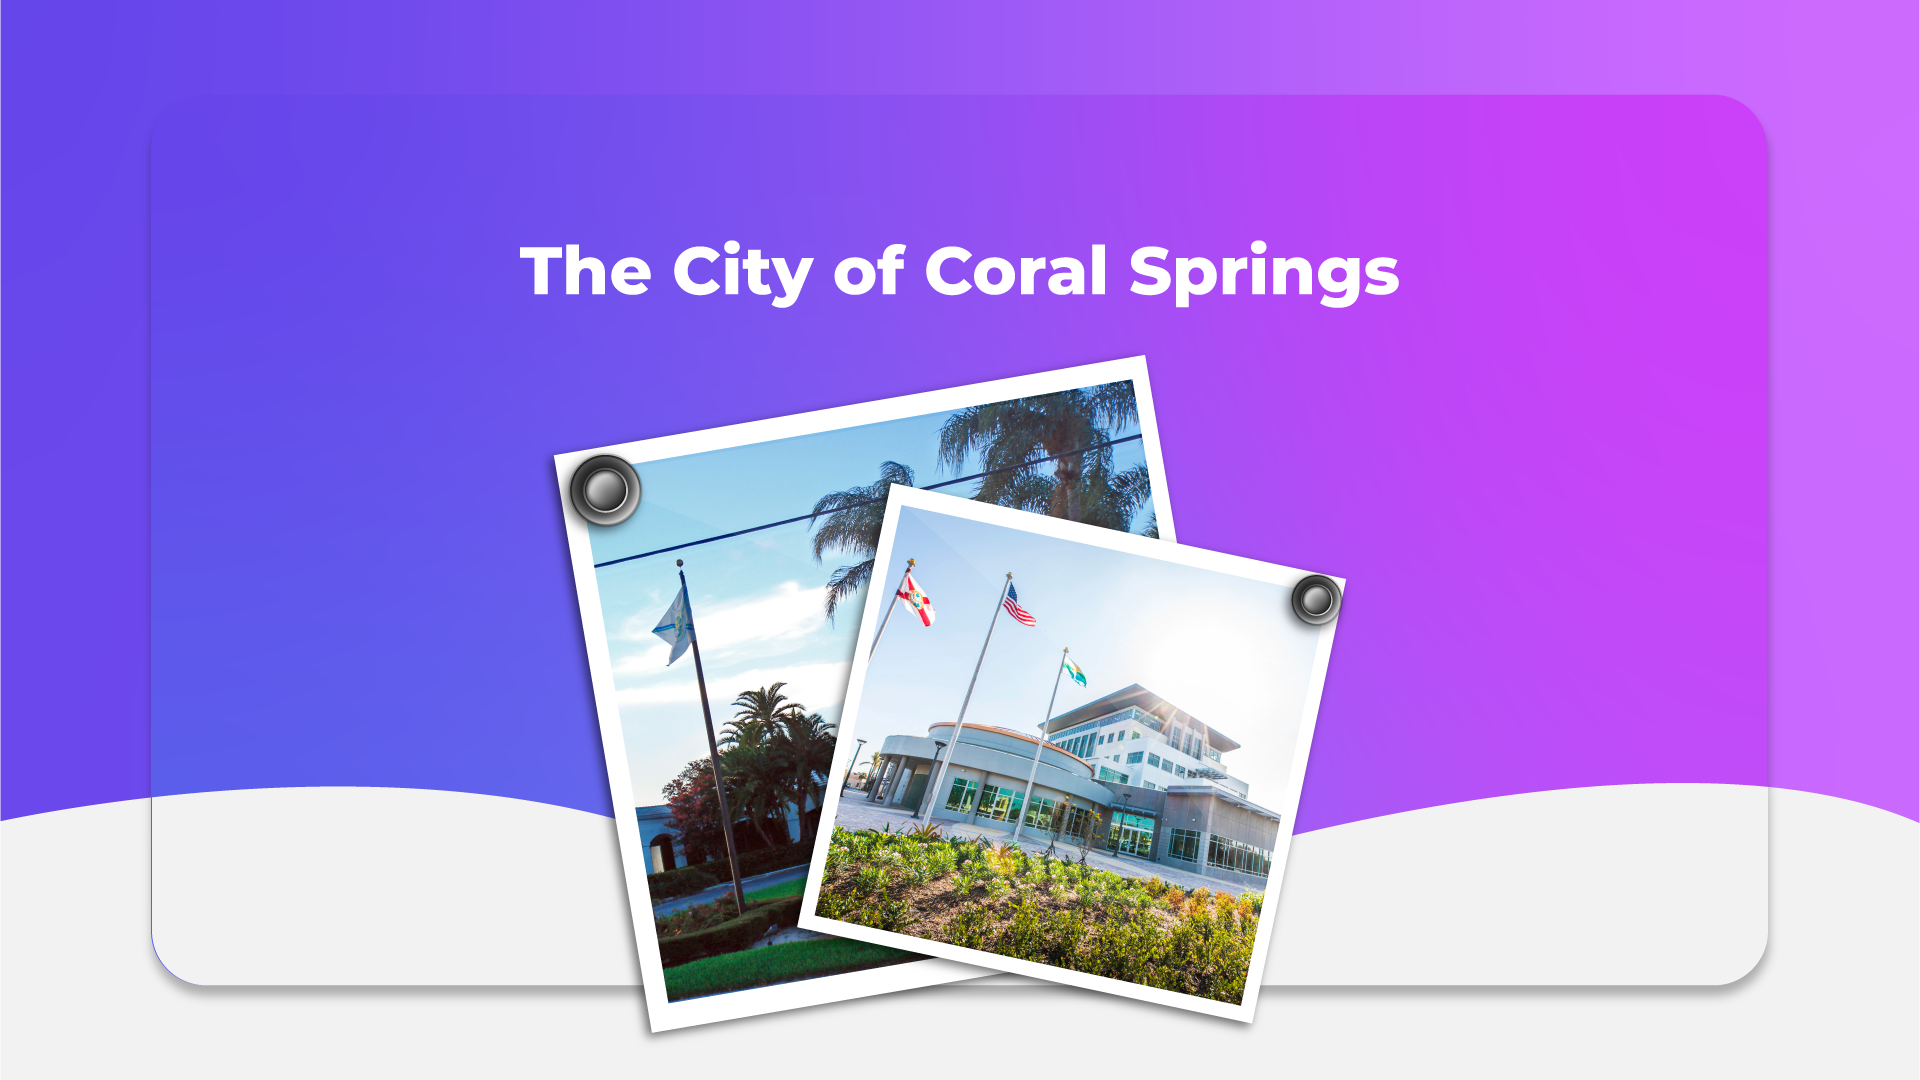 The City of Coral Springs